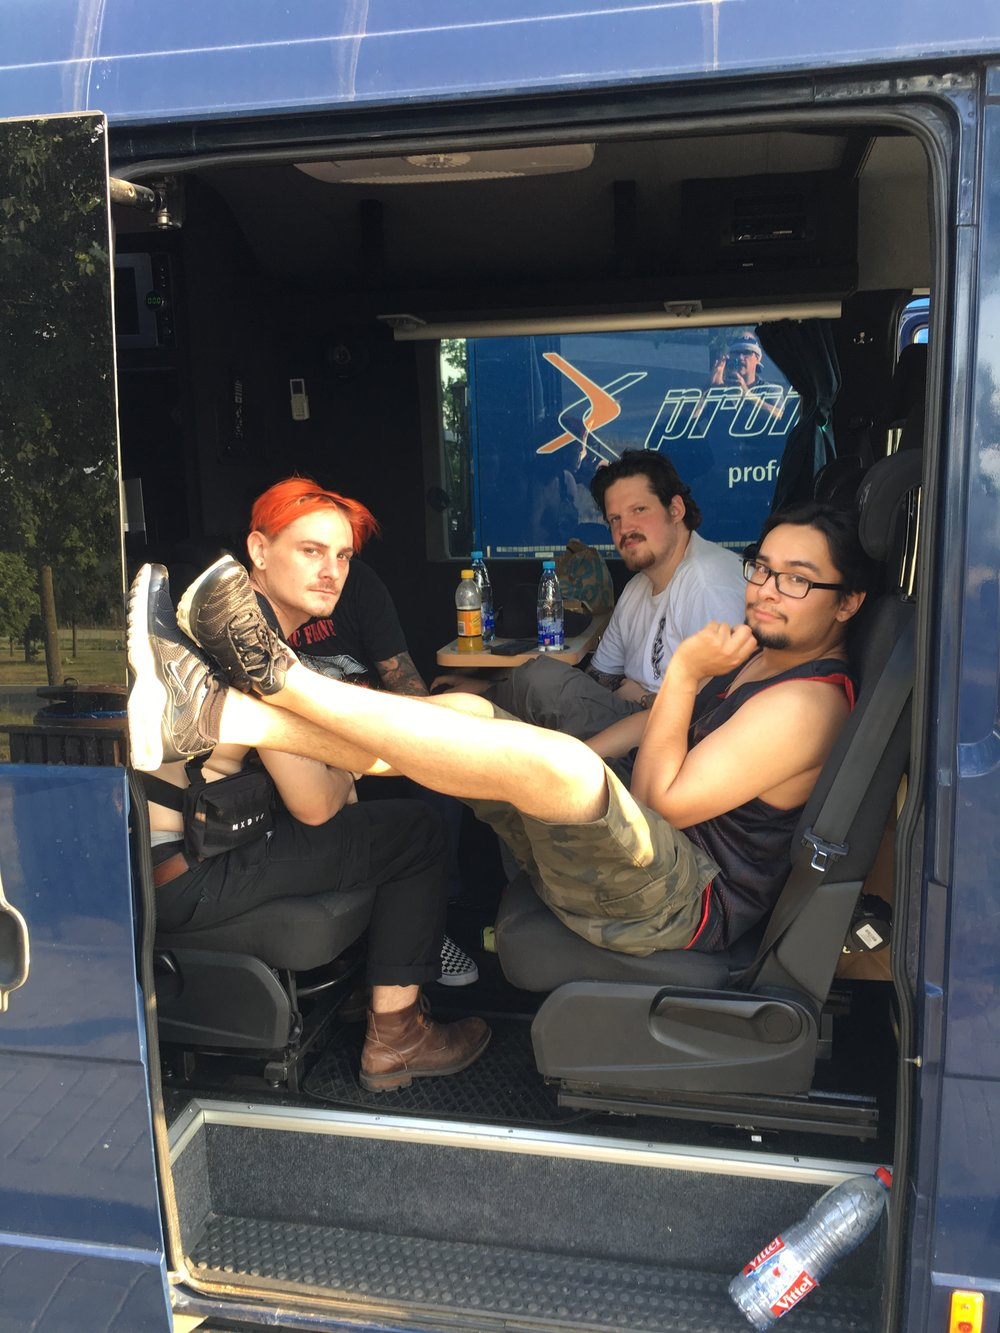 Cayle, Colin and Gabe (our merch guy/professional photographer) relaxing in the first van that we had, moments after it broke down 1 hour into our drive to the first show. 😂🤣😂